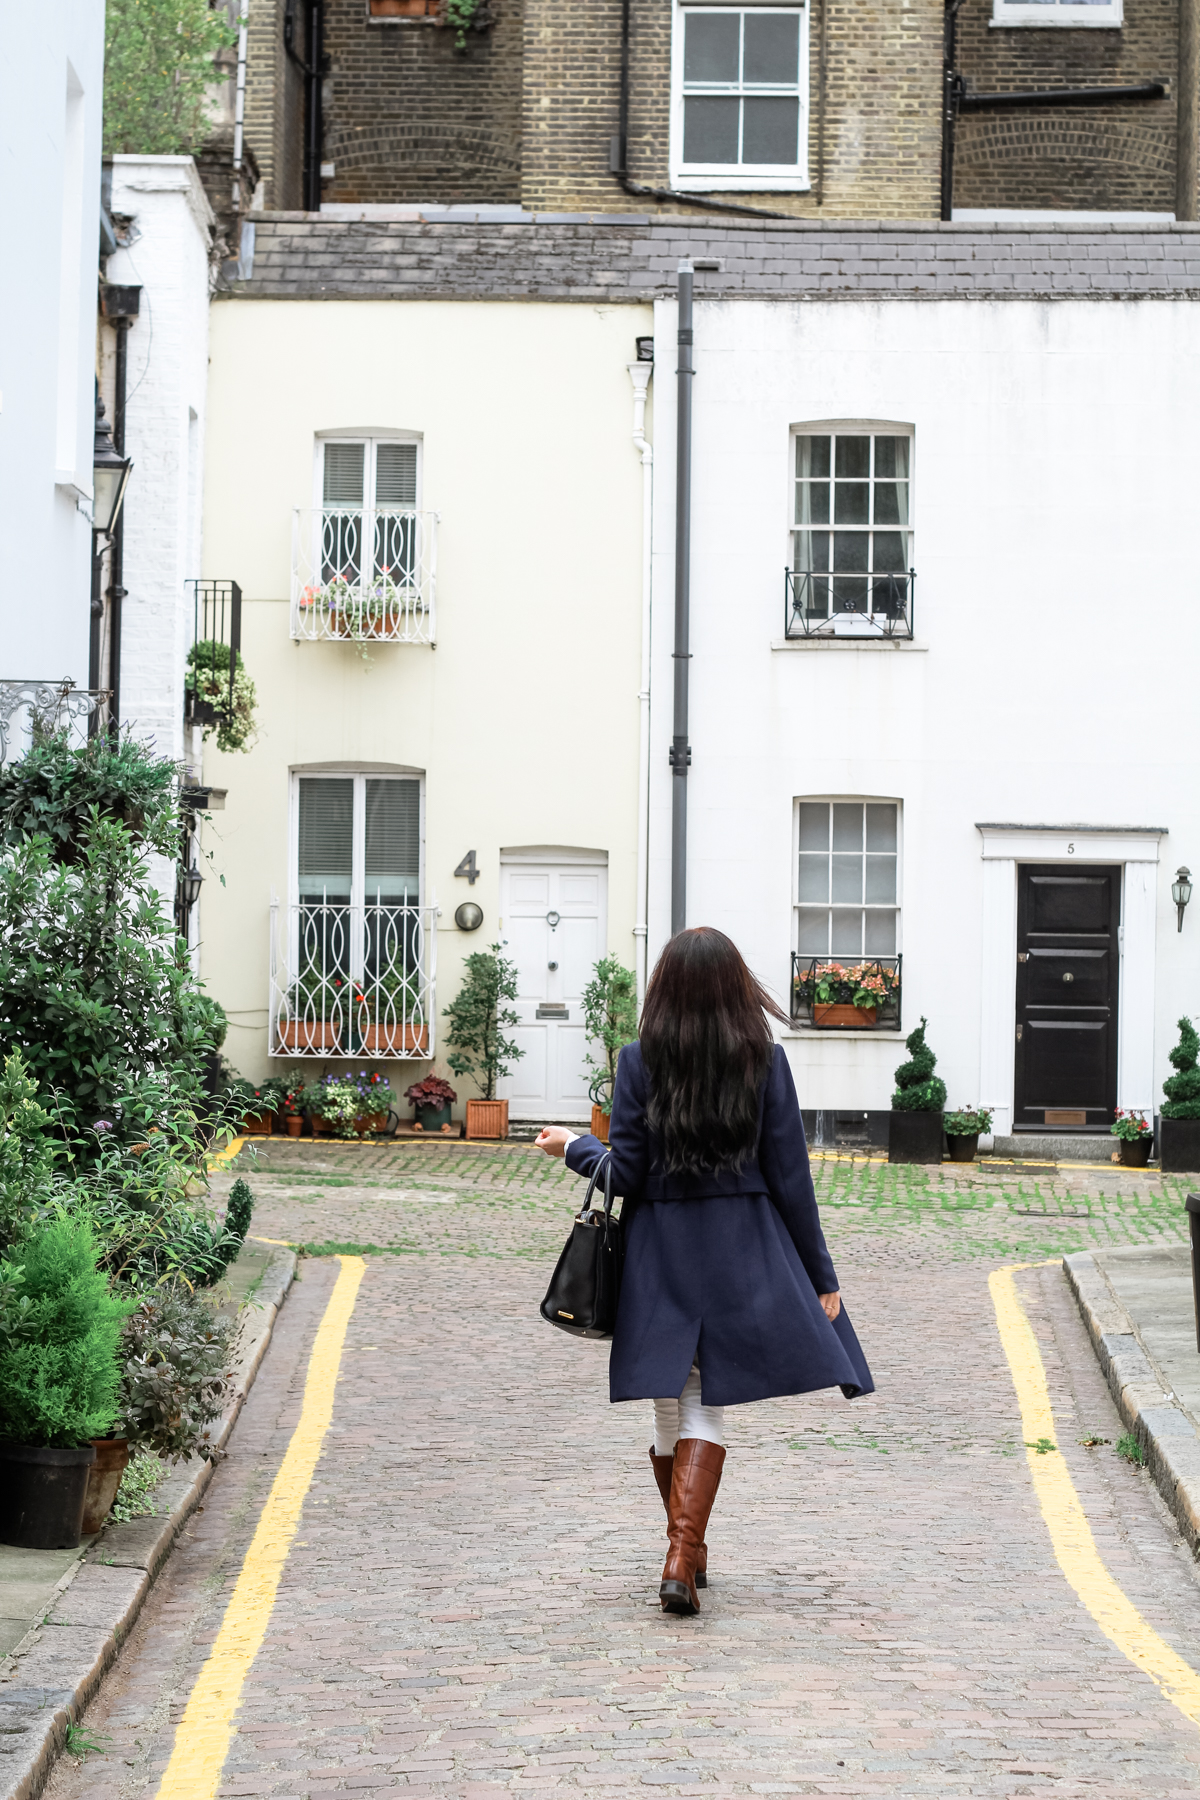 Solo in London: The Best Things to Do in London Solo